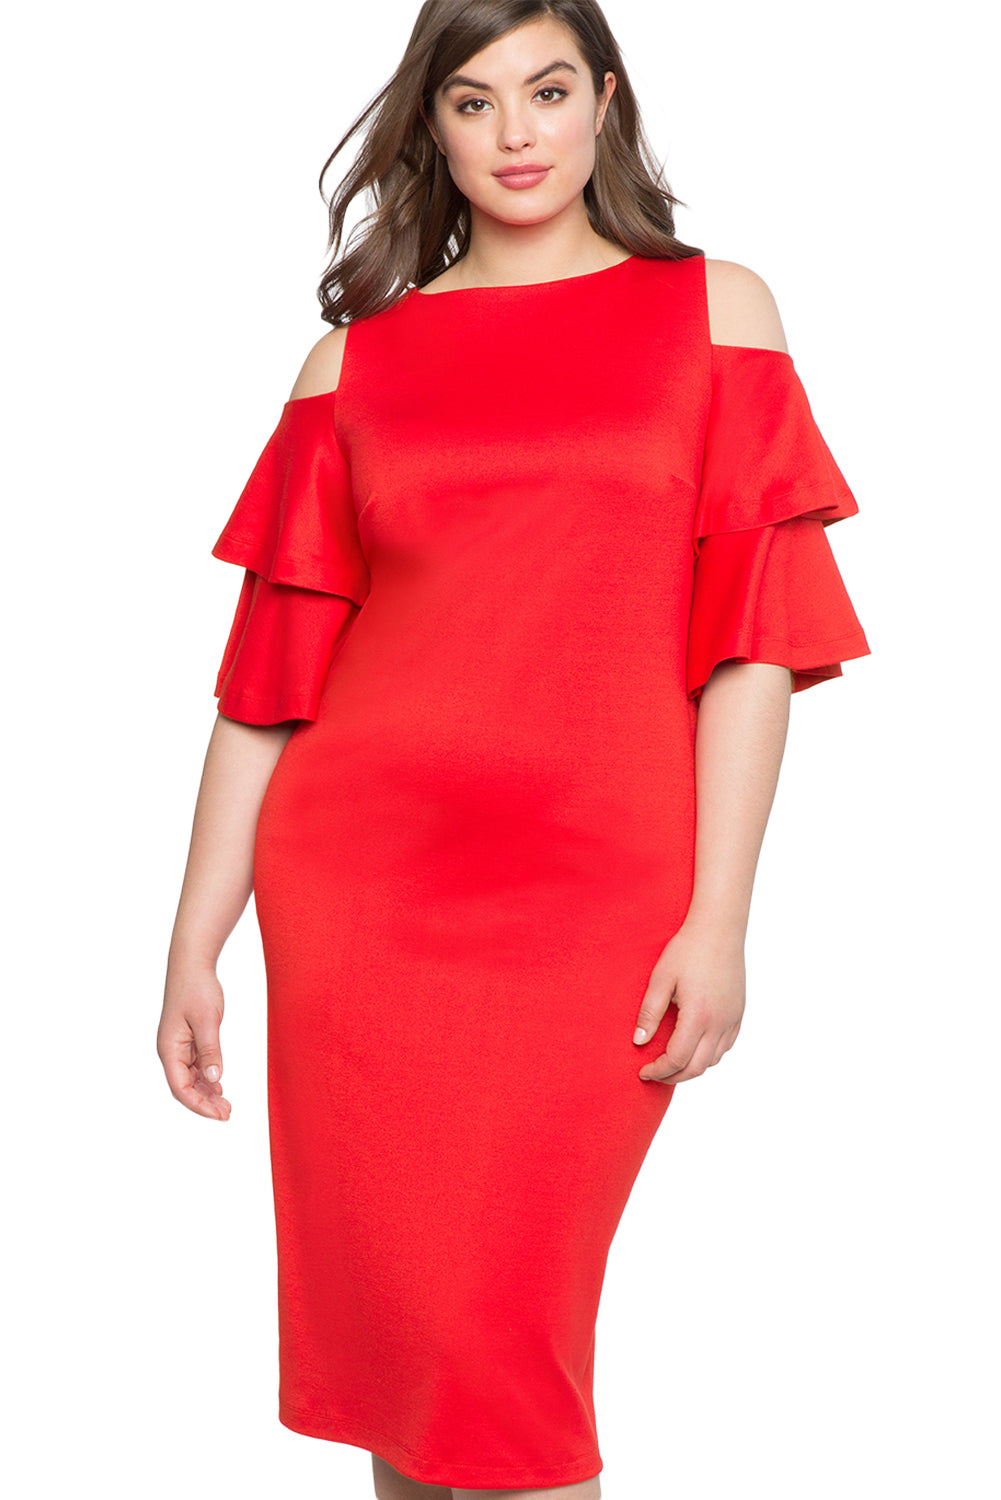 Froid Femme Robe 3 Volant Manche Mb610319 Rouge Ronde Chic Du Epaule dBoerCxW